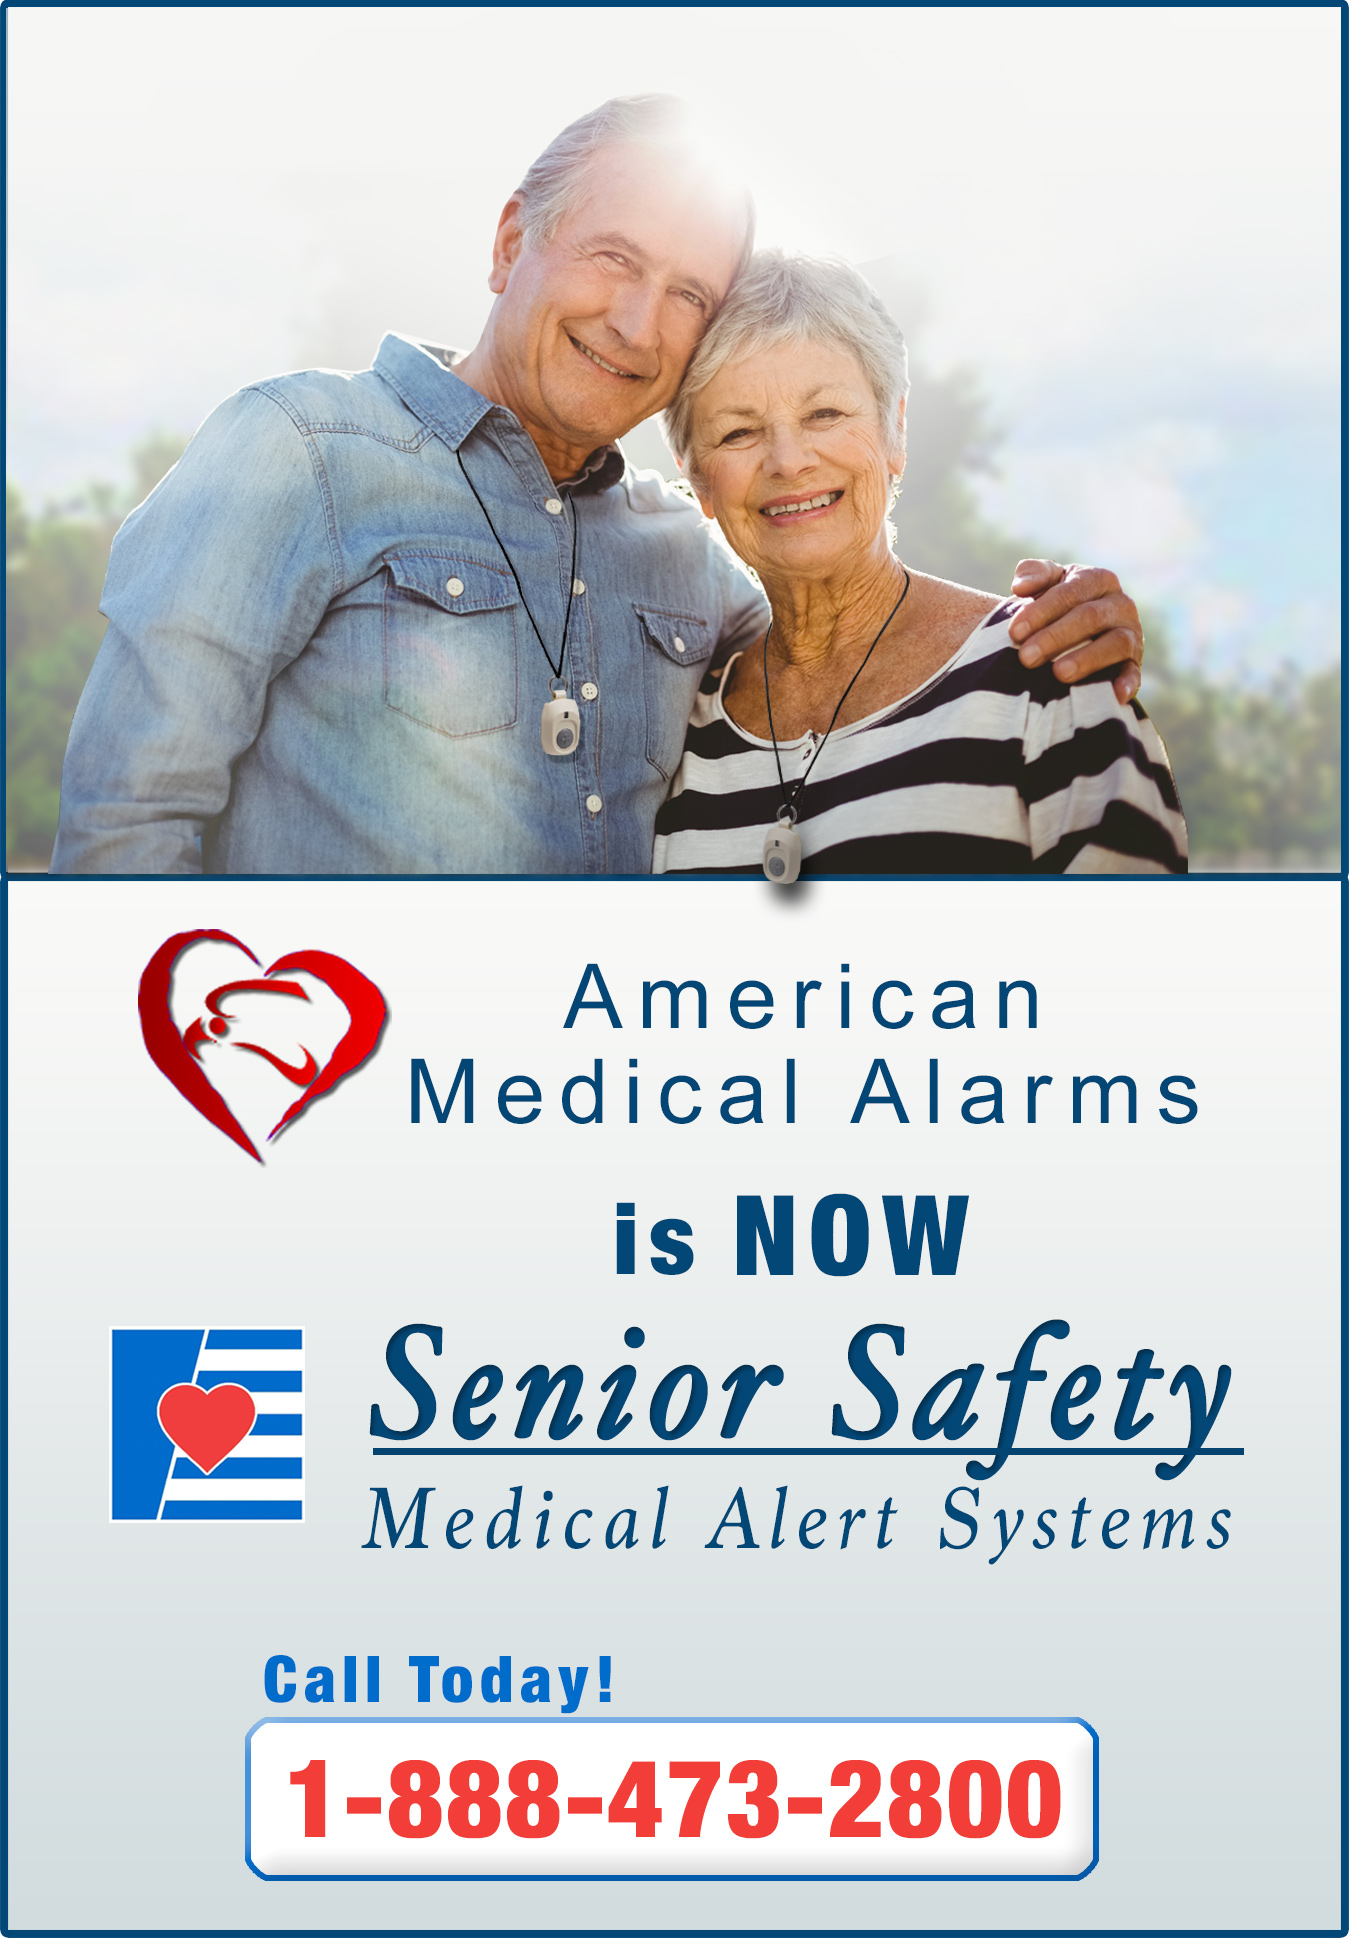 American Medical Alarms on SeniorSafety.com